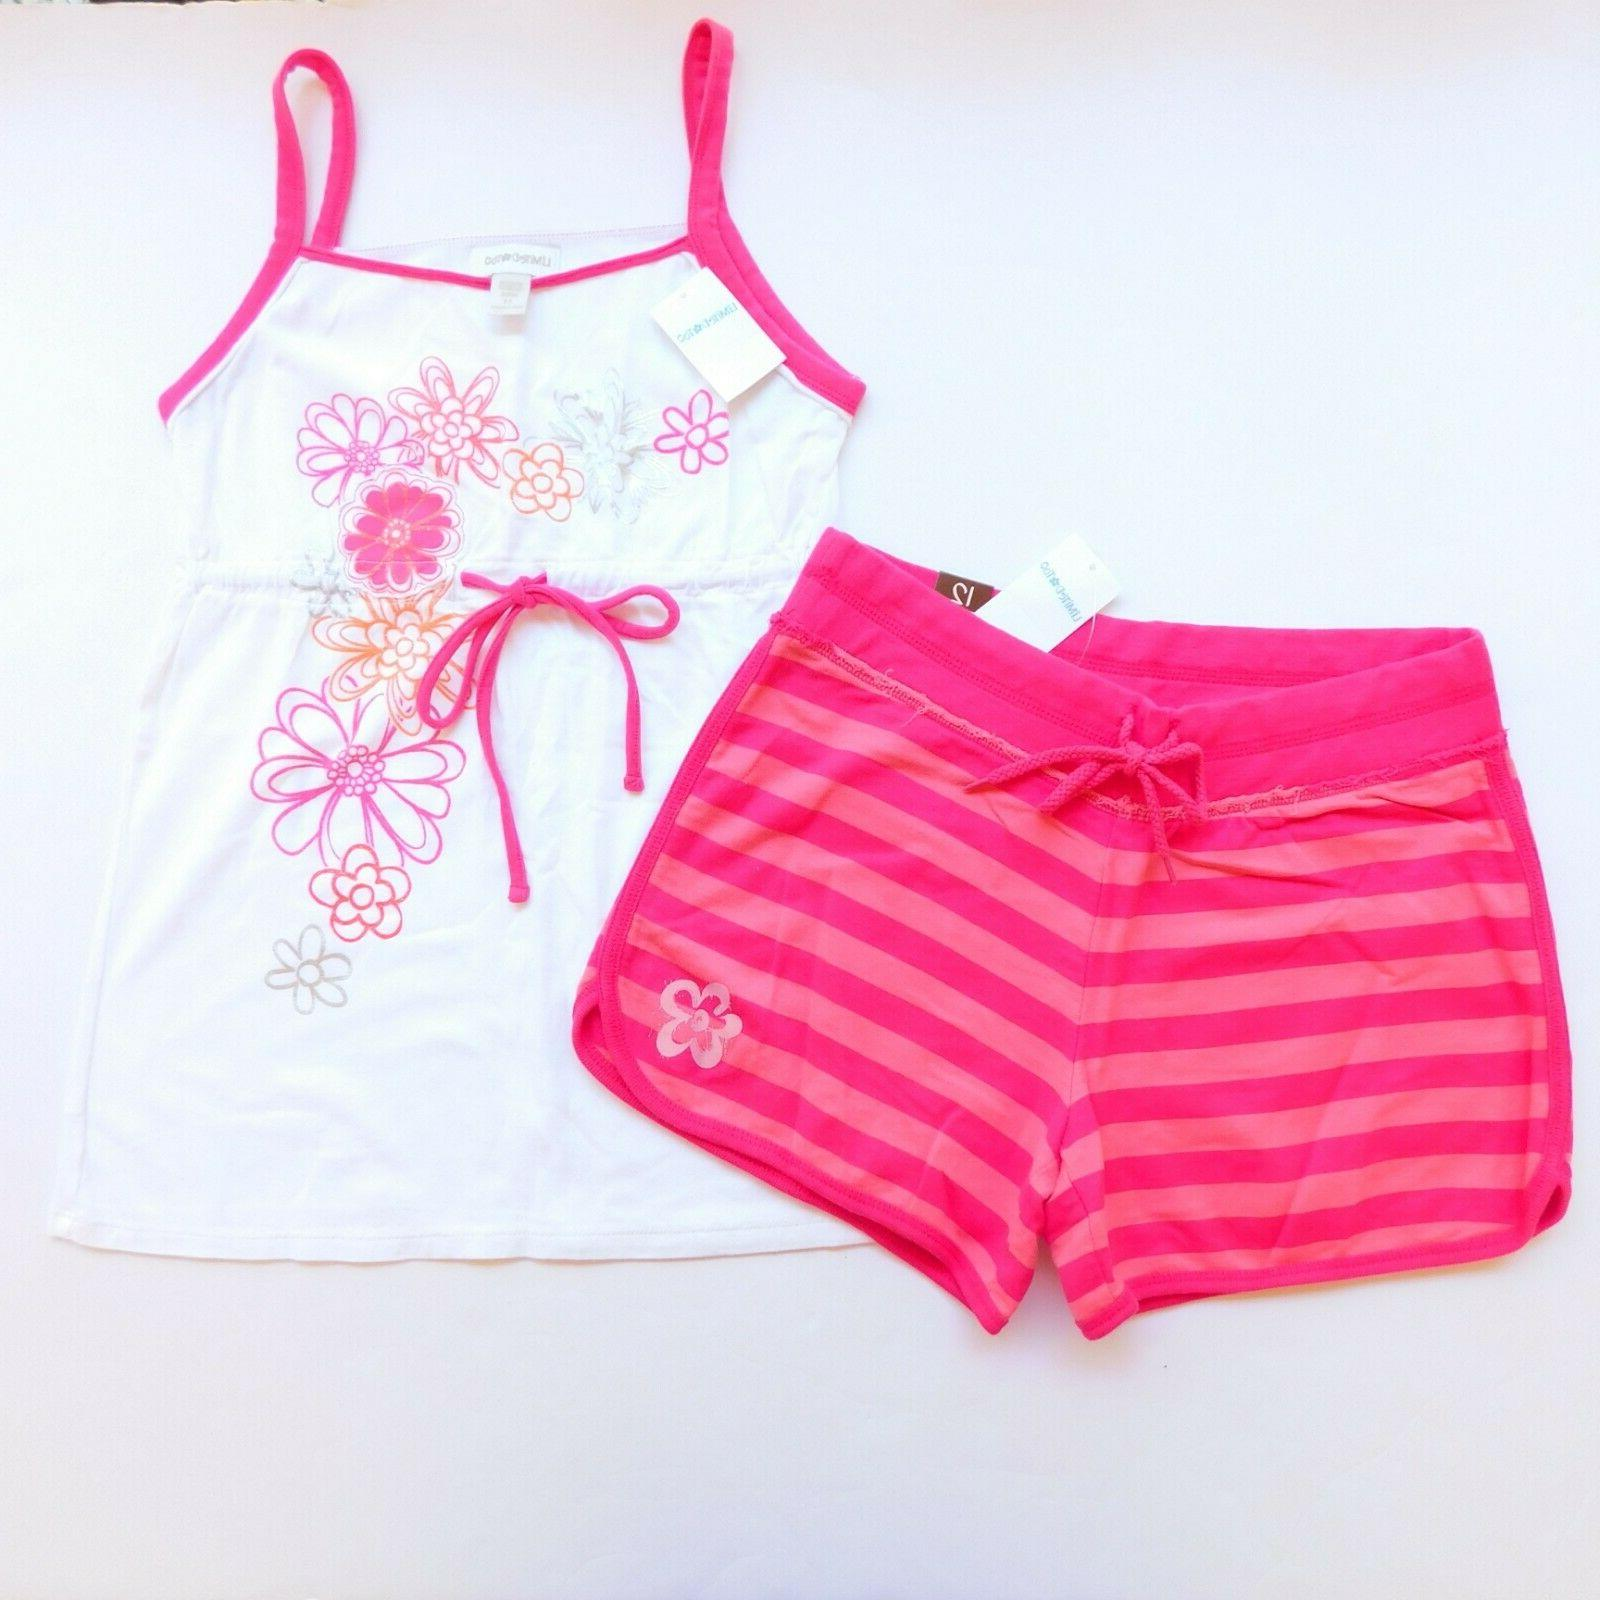 NWT Girls Justice Limited Too Tops Shorts Lot New